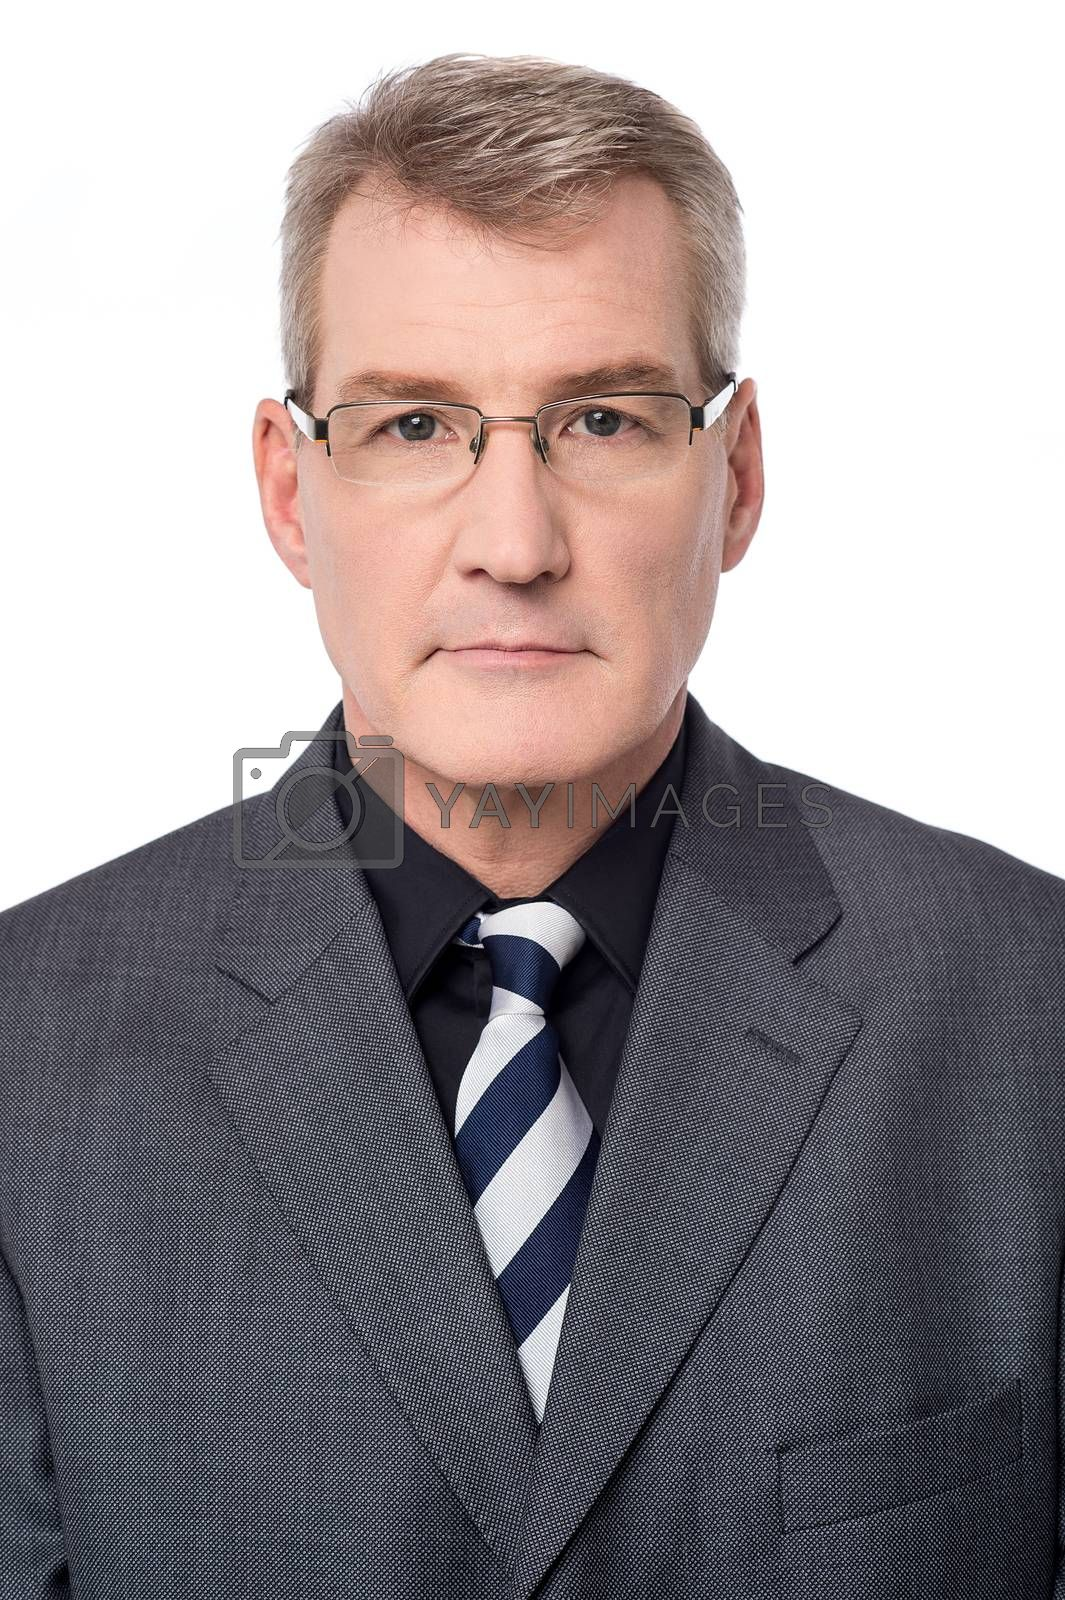 Image of a confident business man over white